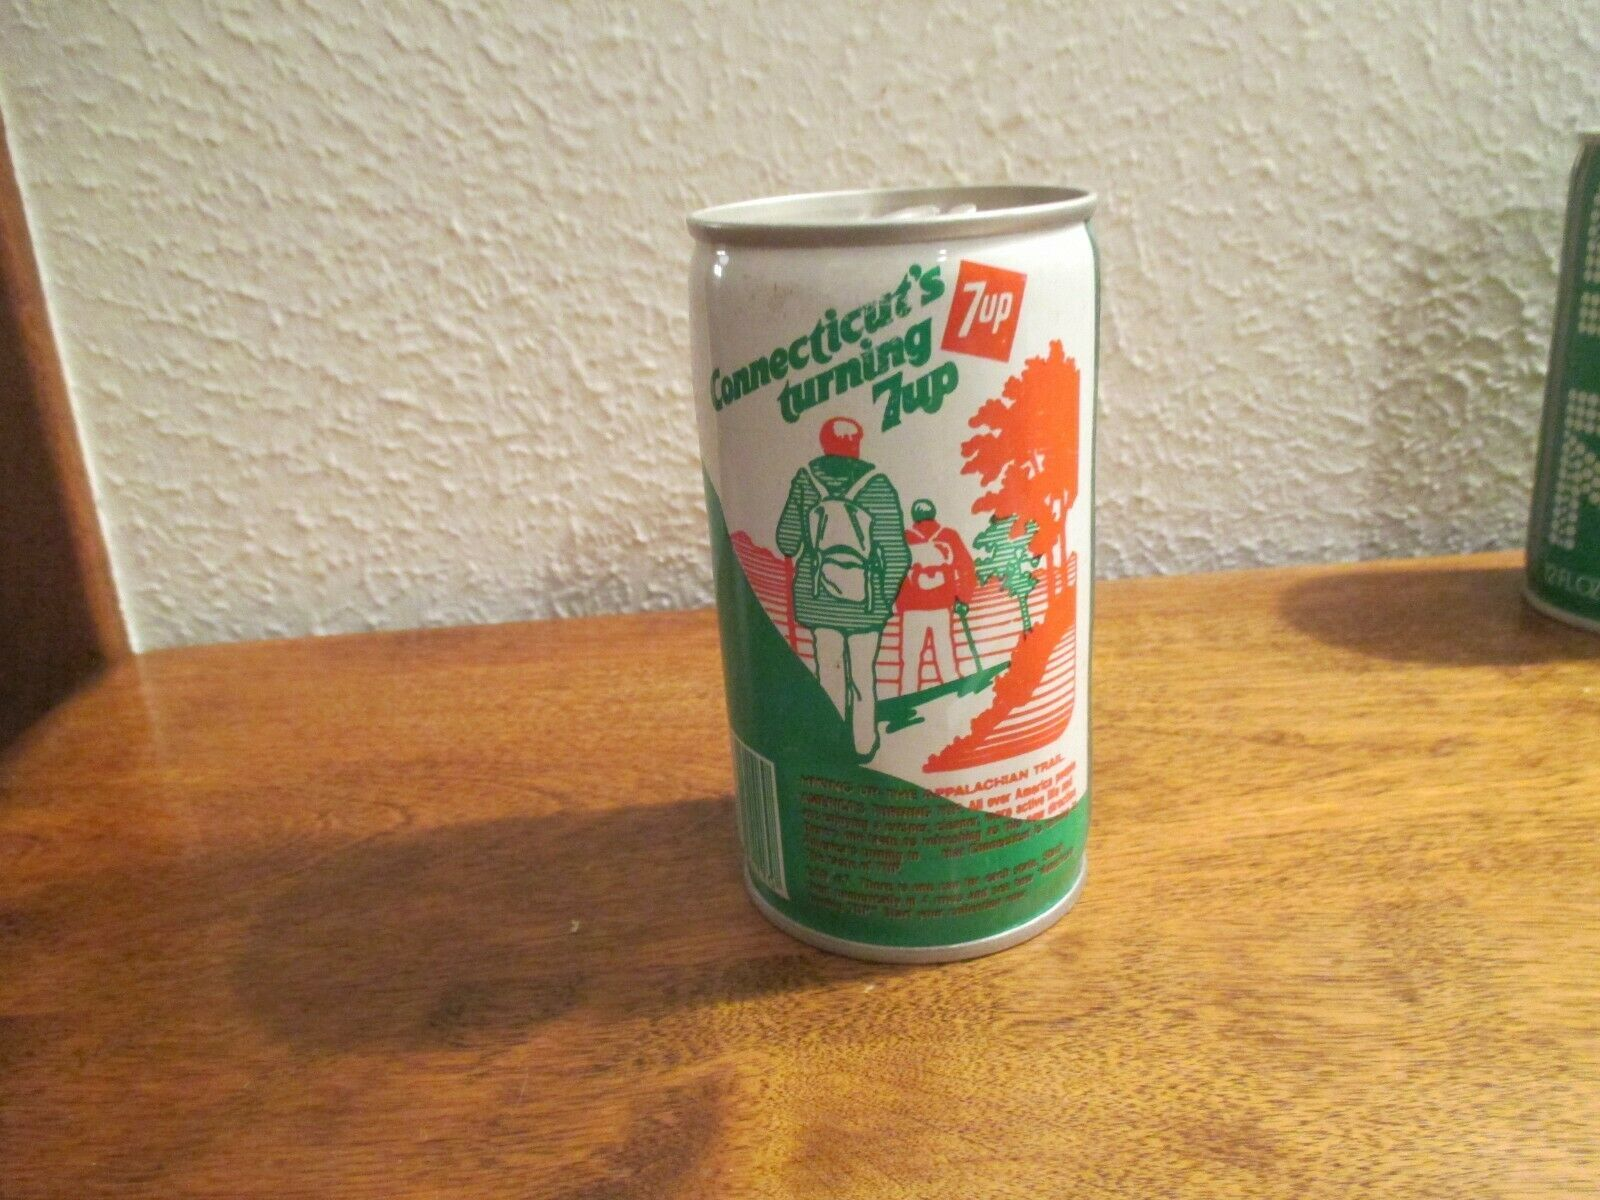 Primary image for Connecticut CT Turning 7up vintage pop soda metal can Hiking Appalachian trail